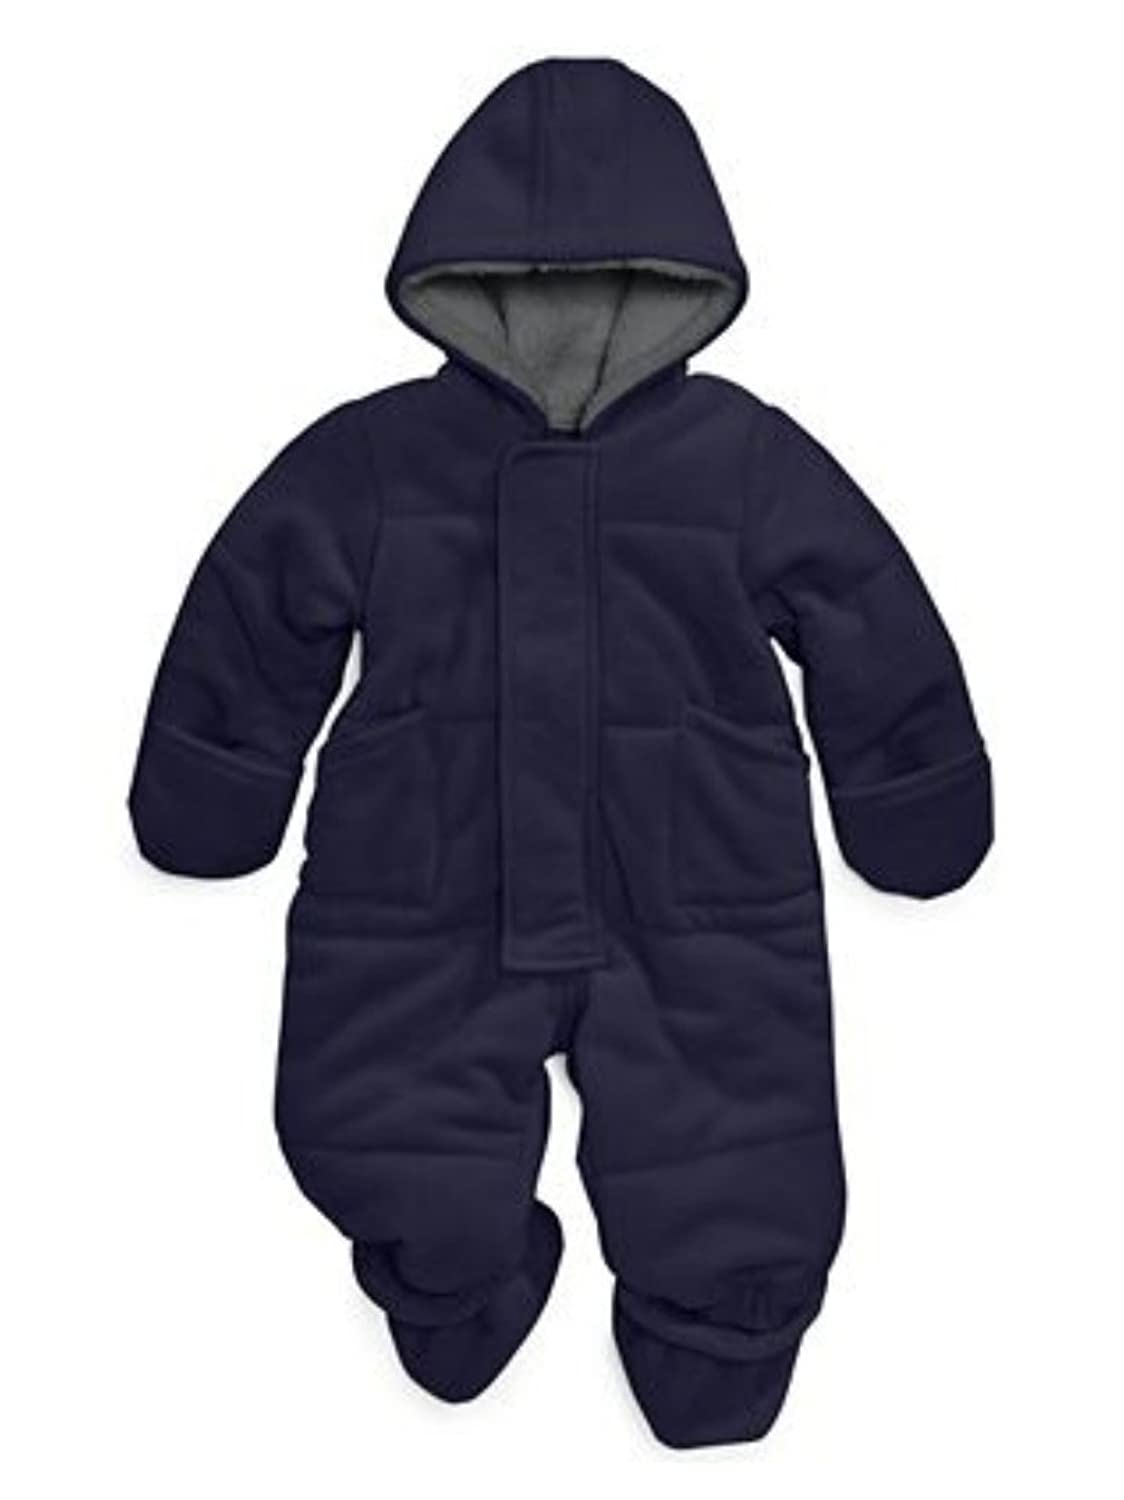 3b0215366 First Impressions Infant Boys Plush Navy Blue Snowsuit Baby Pram ...